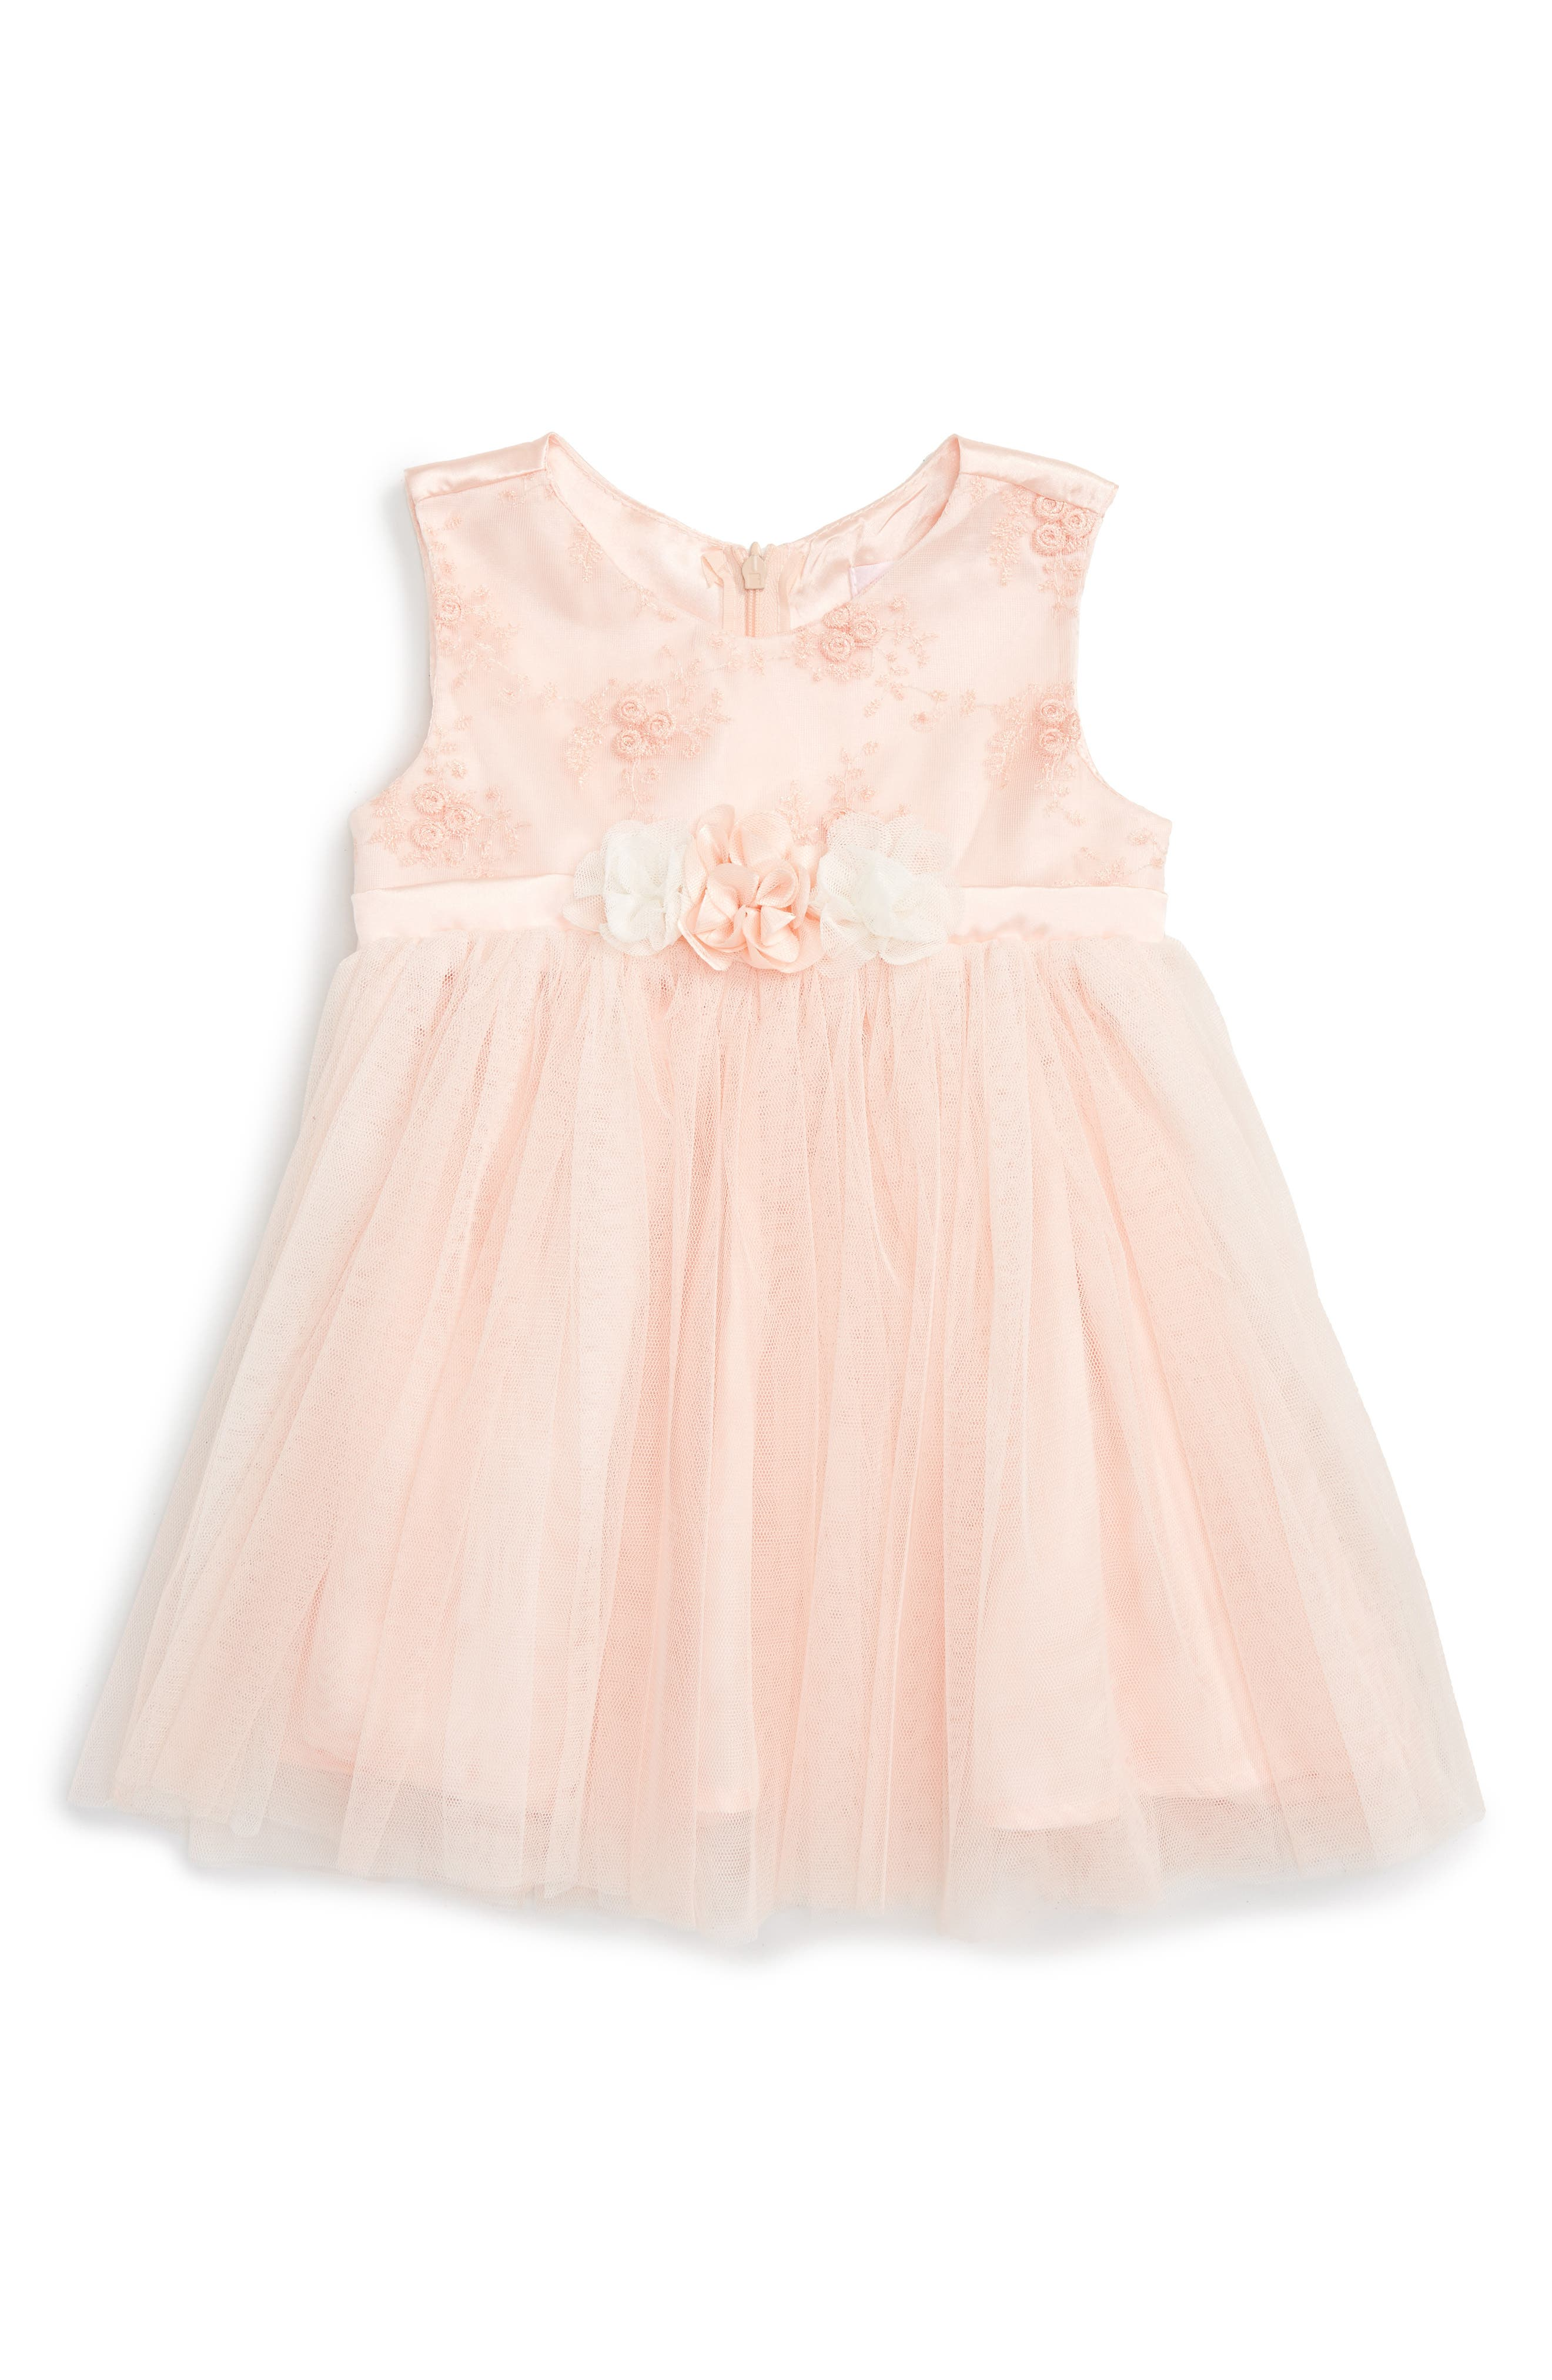 Floral Embroidered Tulle Dress,                         Main,                         color, PEACH